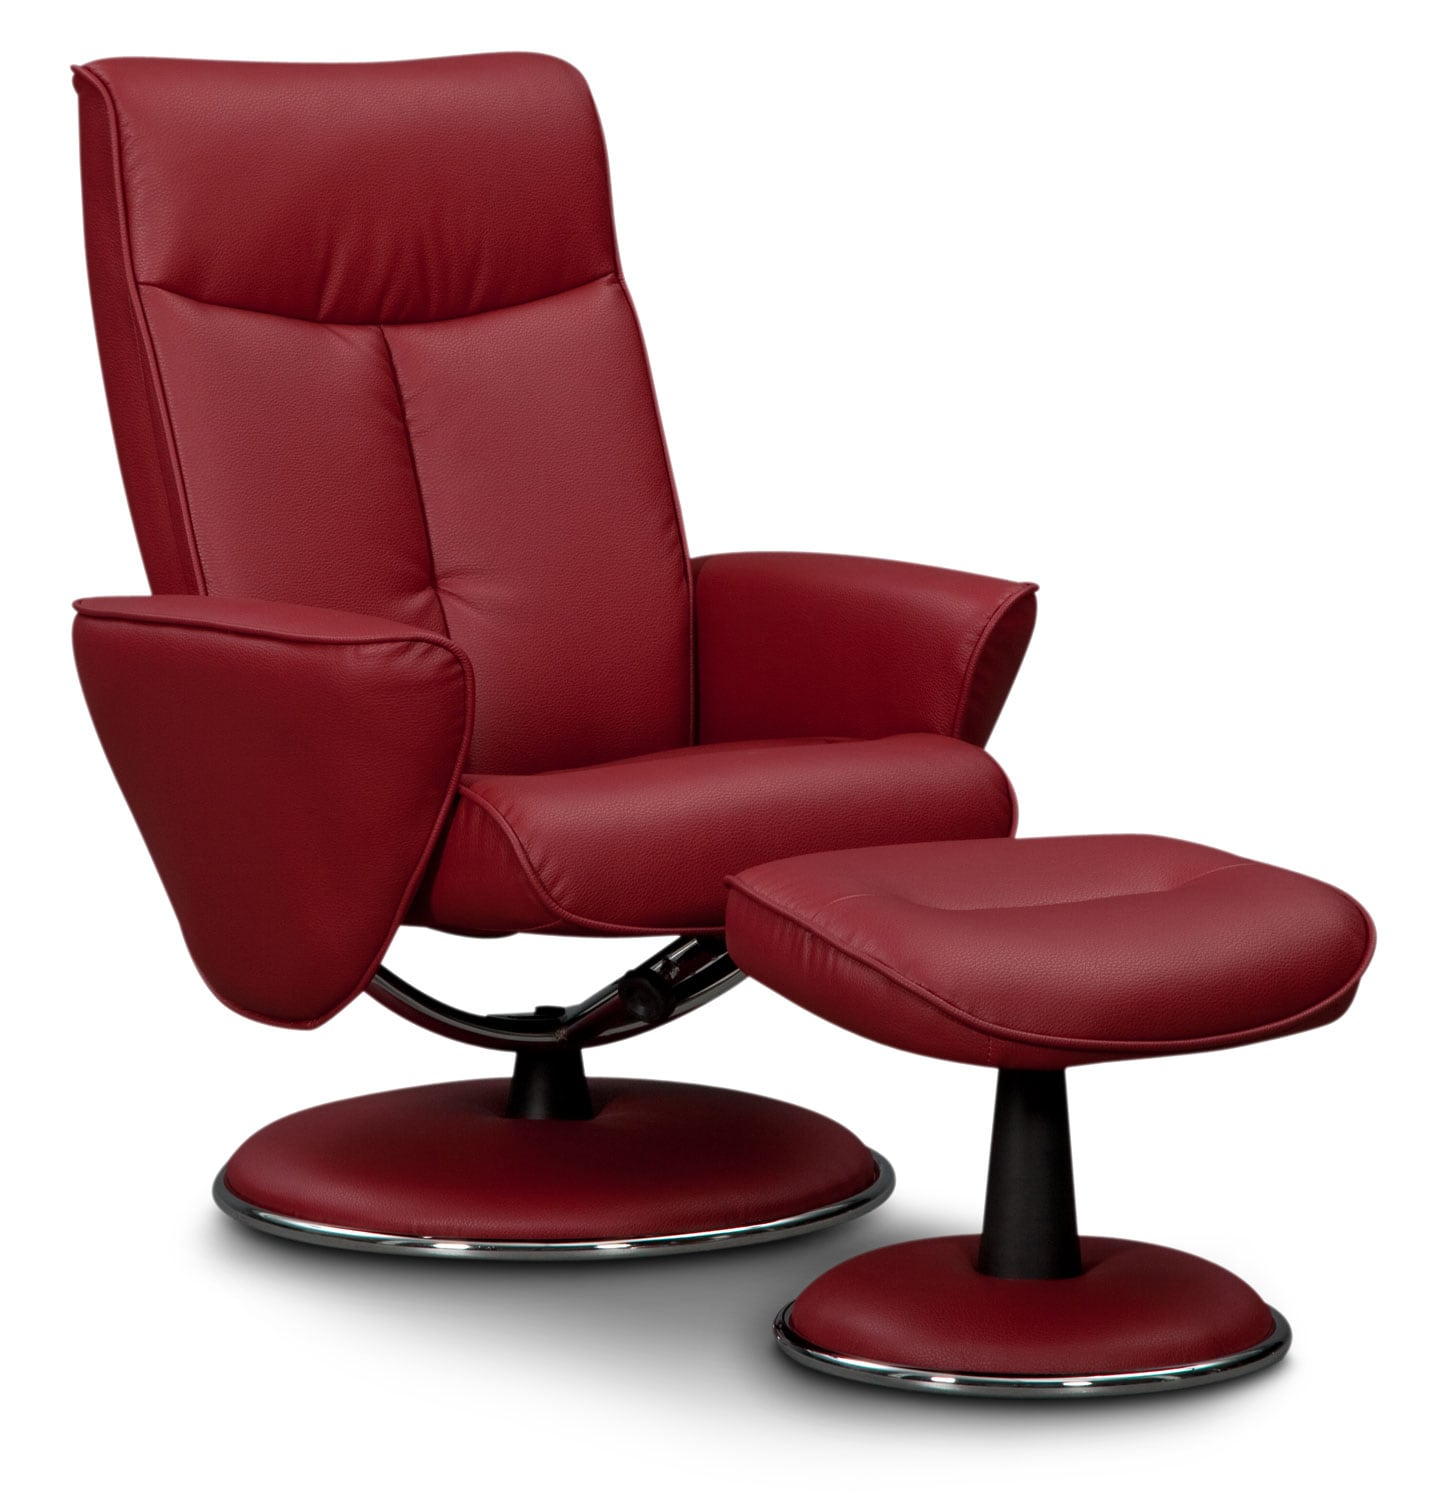 Tracer Reclining Chair and Ottoman - Red